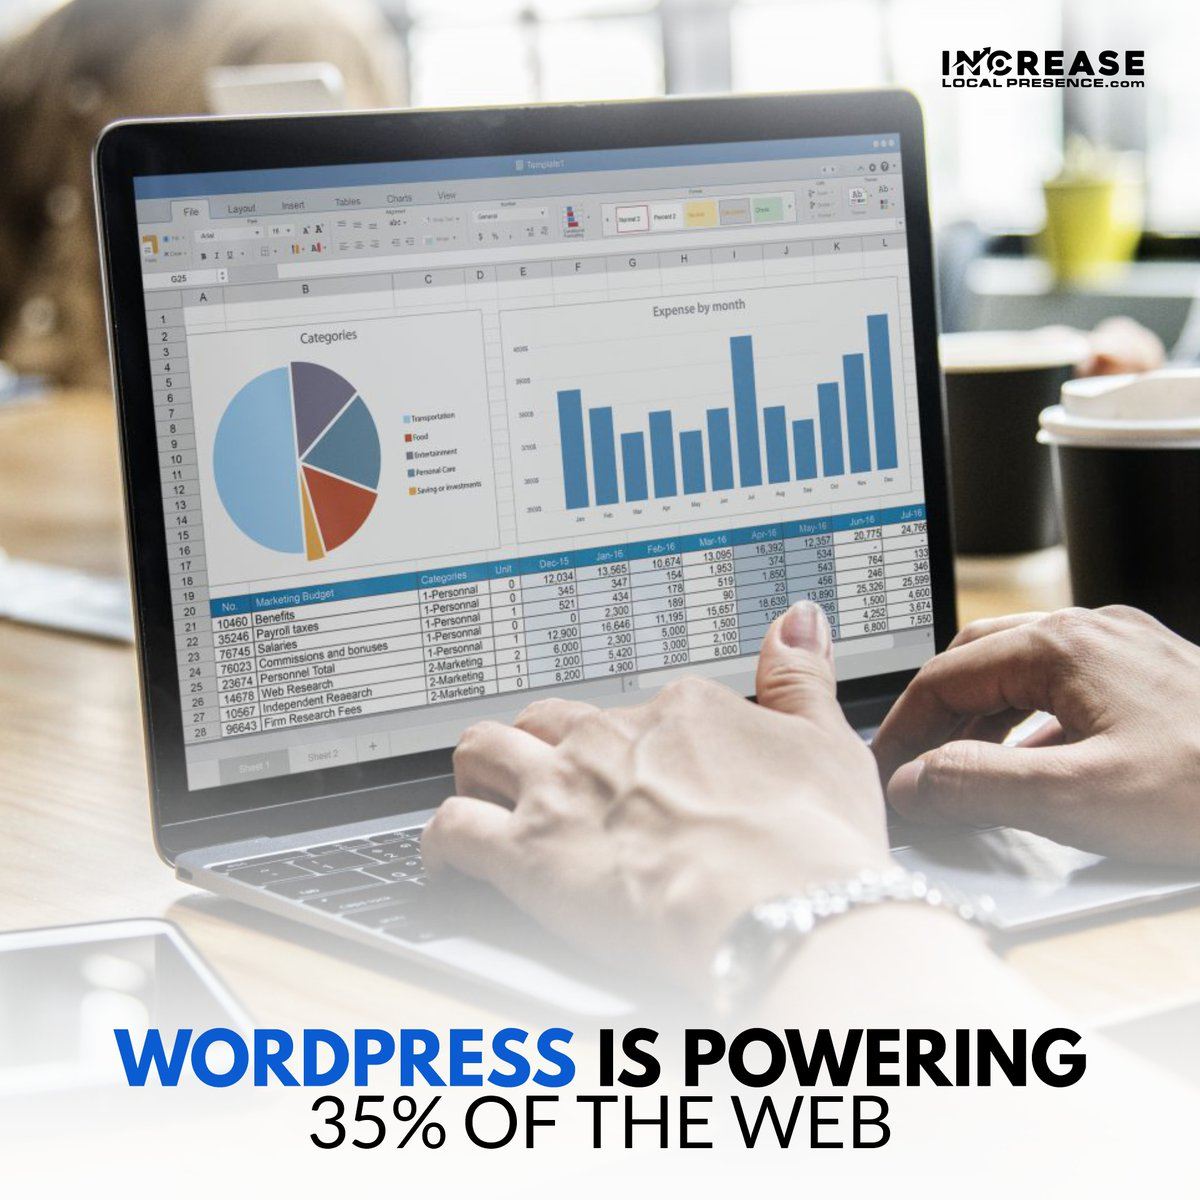 It may sound astonishing, but what was once just an obscure content management system is now powering more than 35% of the web, according to  and Netcraft. ---- 🌐  . #increaselocalpresence #webdevelopment #digitalmarketing #branding